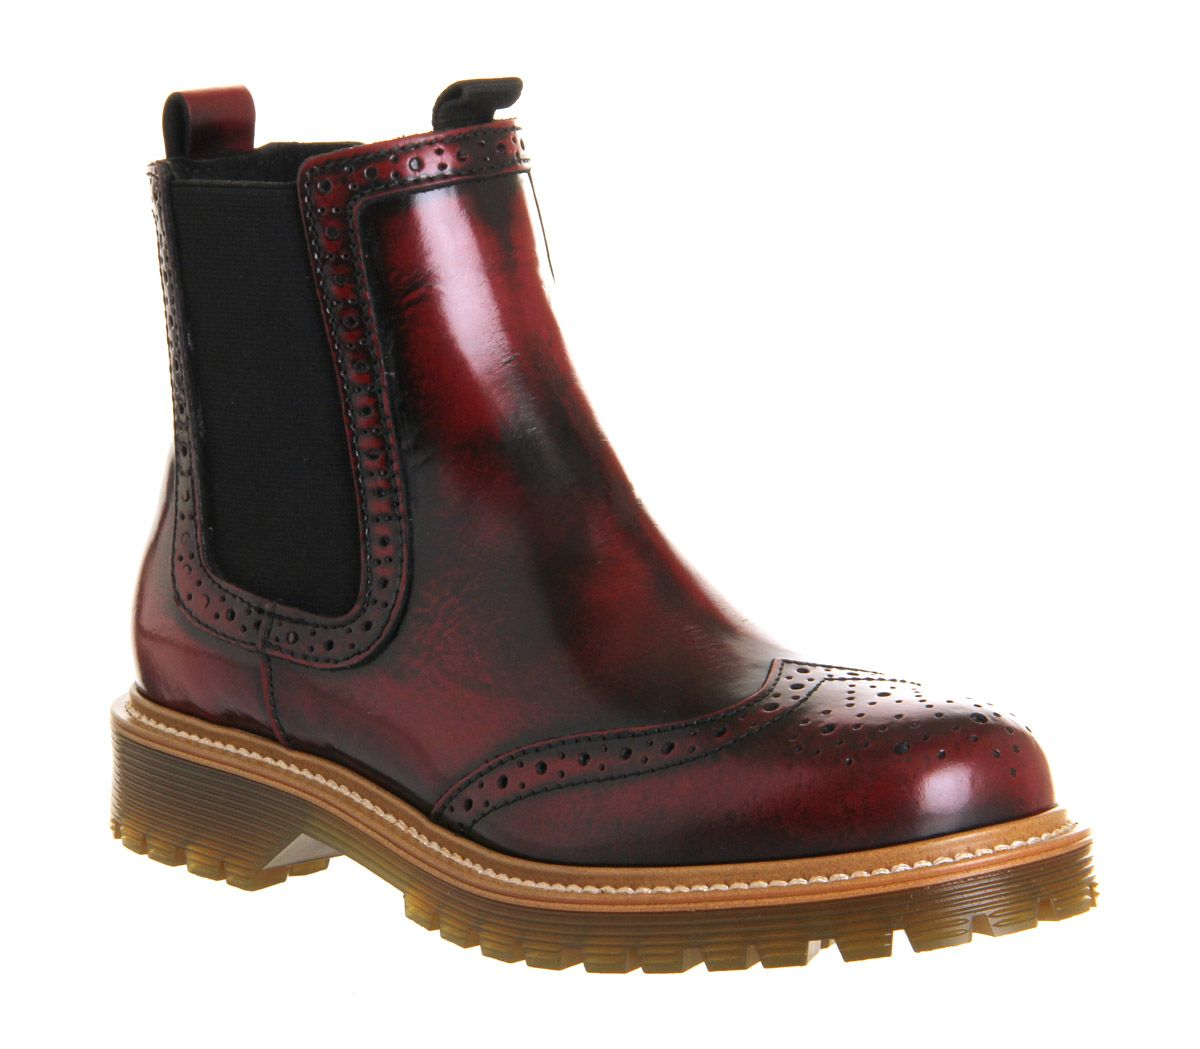 Office Charlie Brogue Chelsea Boot Burgundy Leather - Ankle Boots